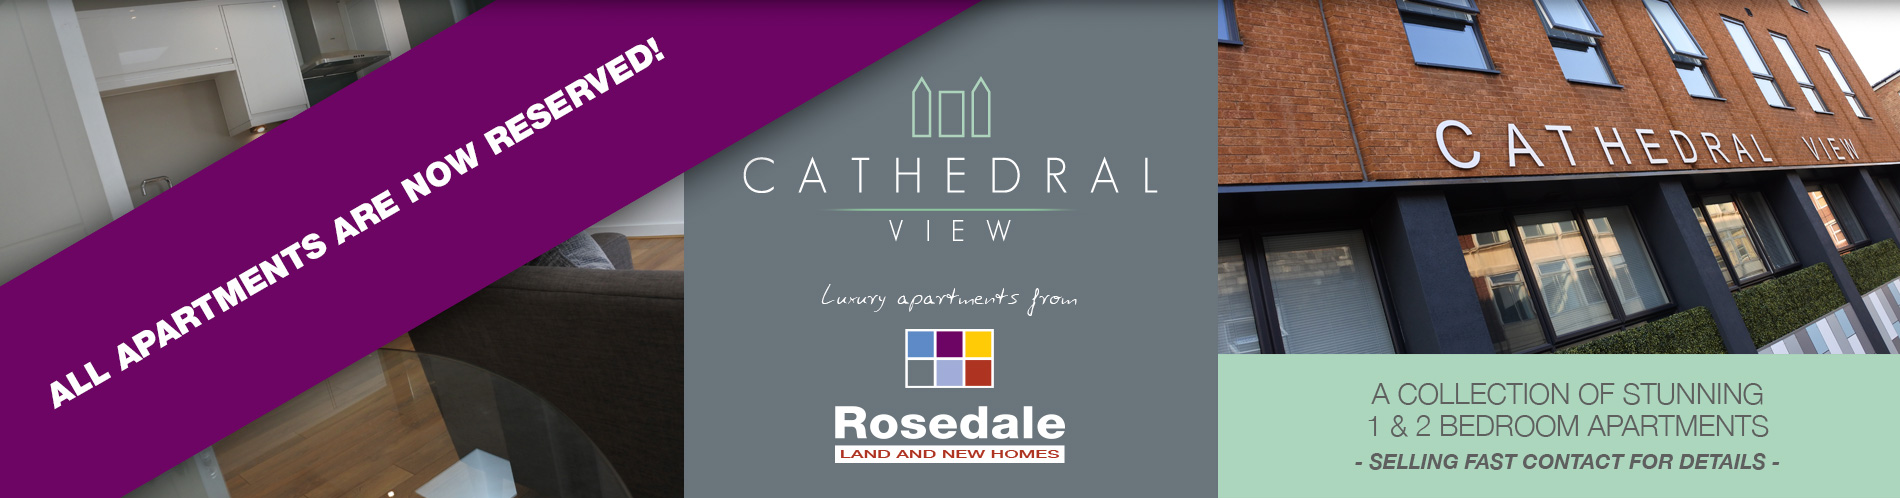 Cathedral Views Apartments for Sale Peterborough